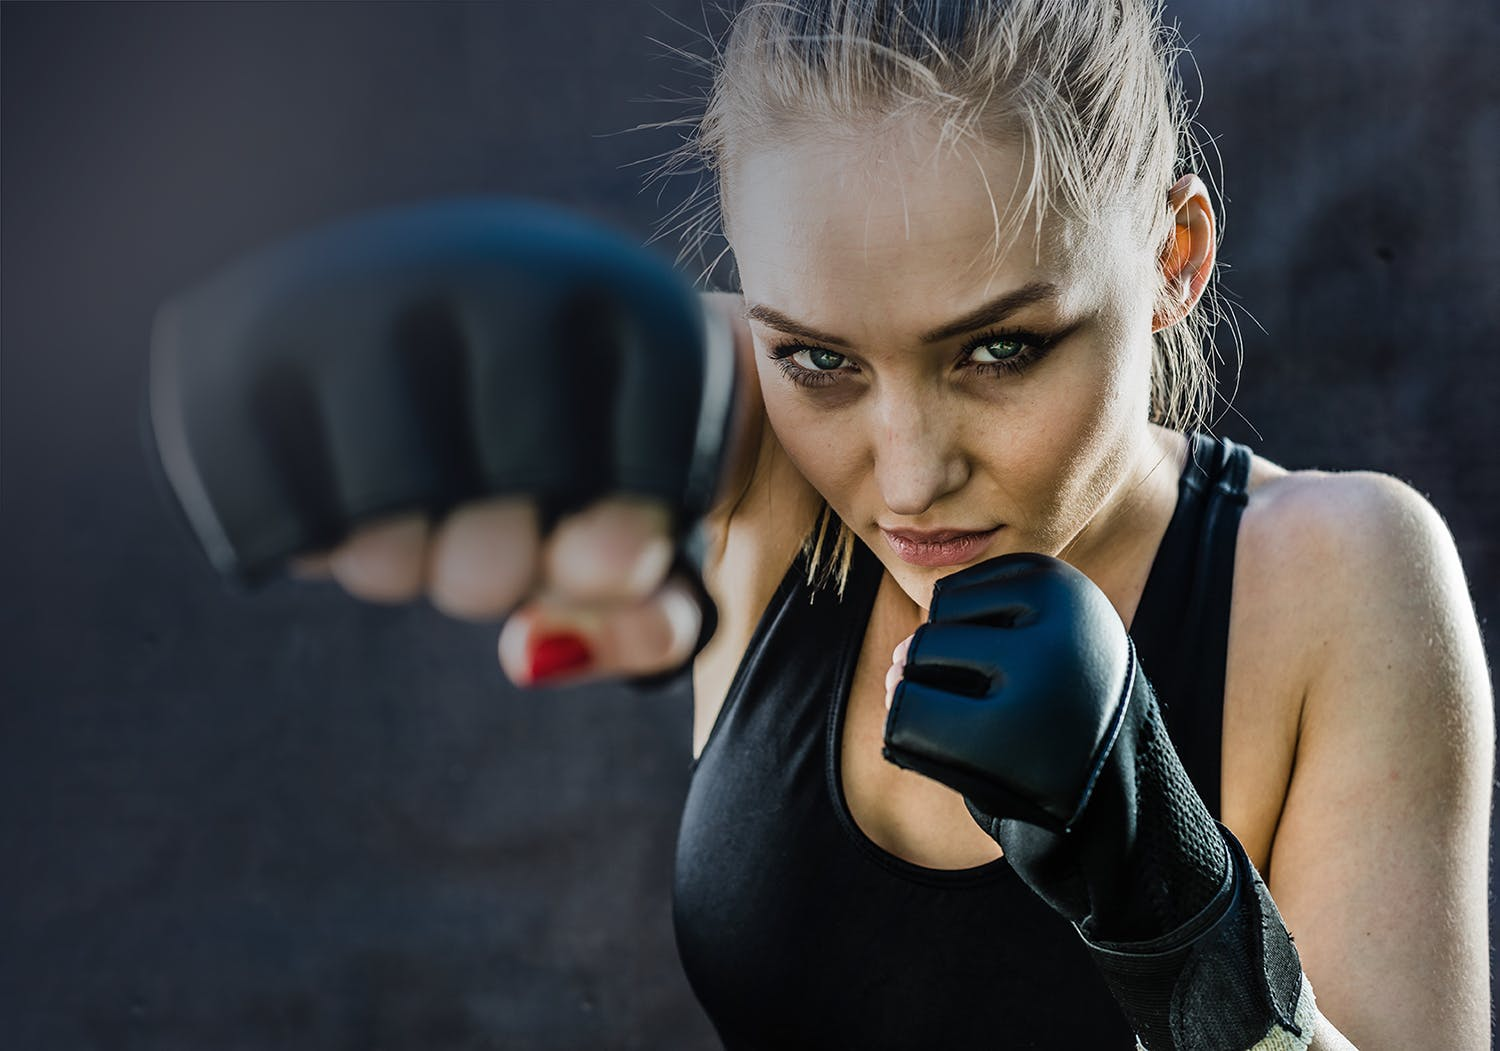 Martial Arts Near You for classes, workshops & events near you